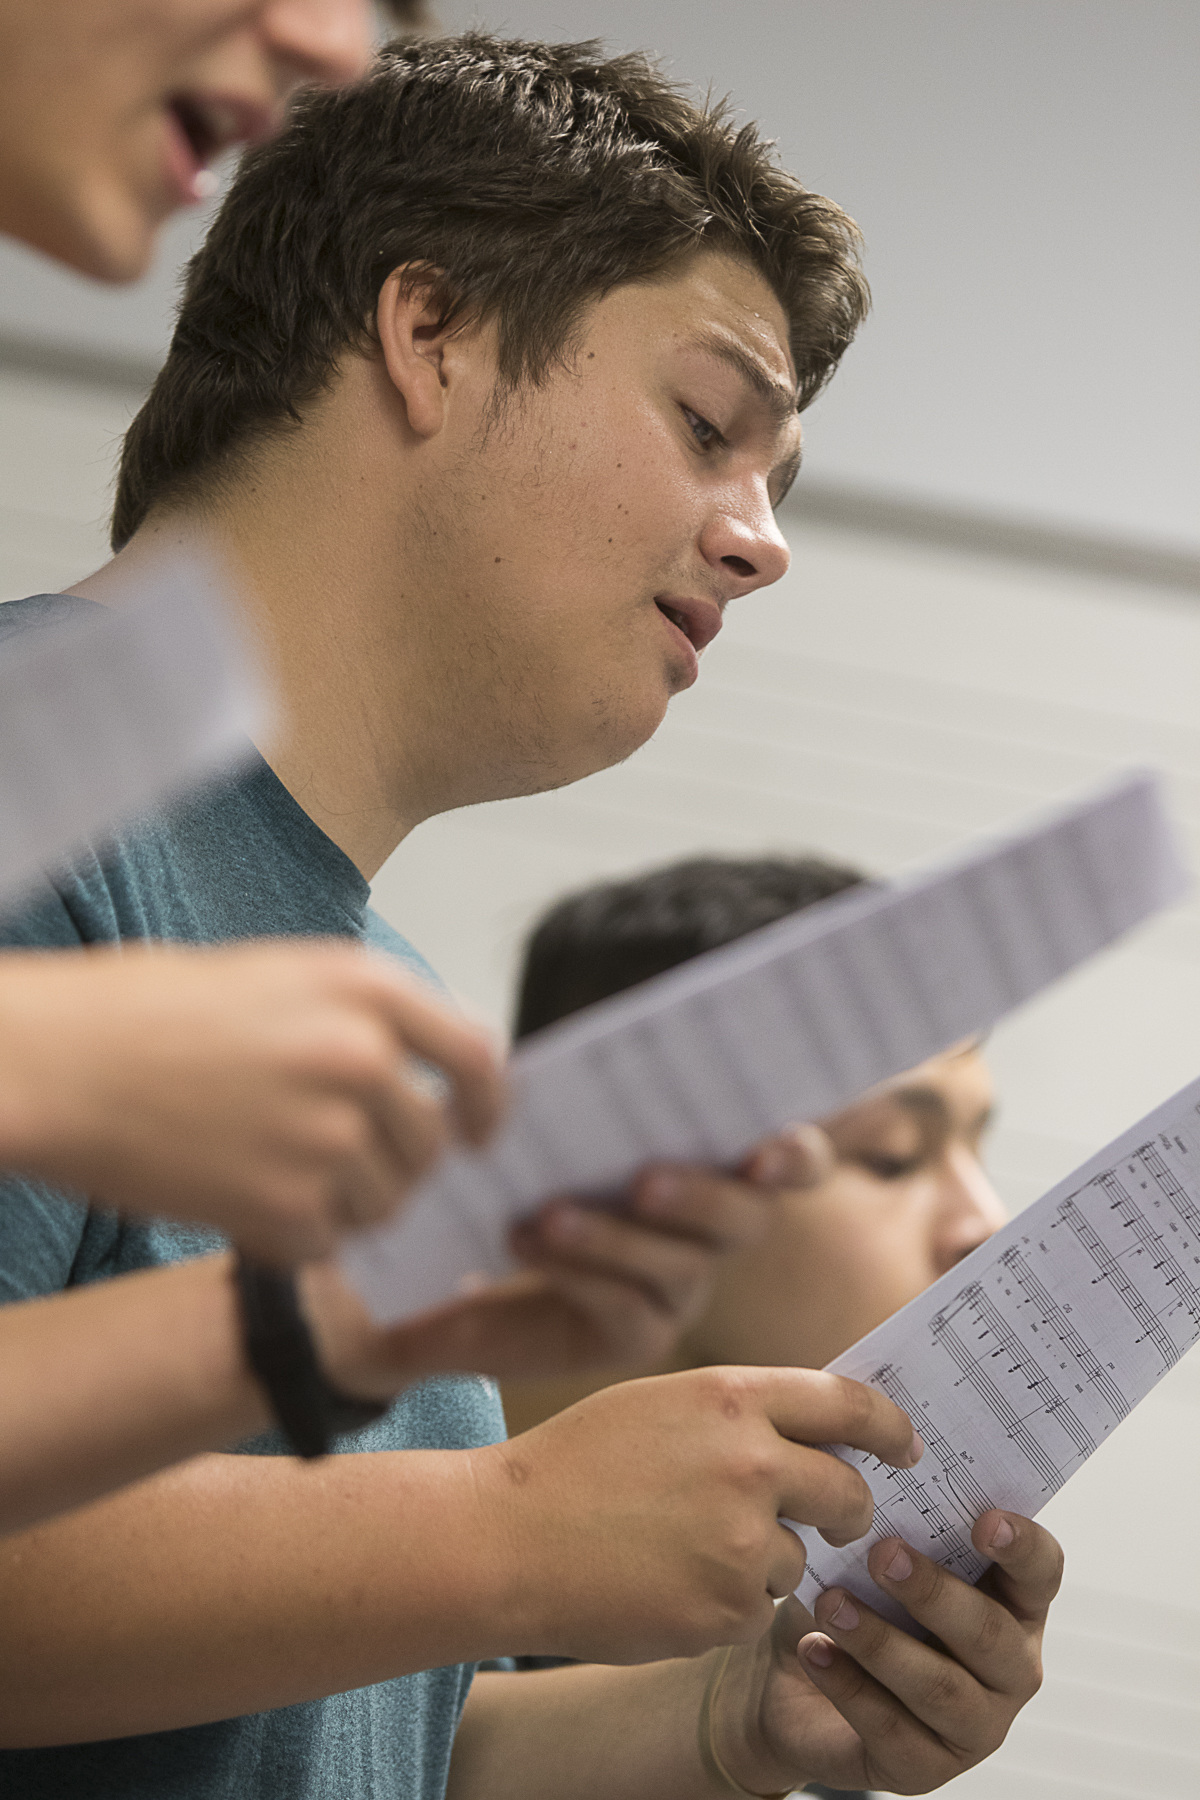 WCJC Choir member Jacob Alexander of Wharton rehearses a song